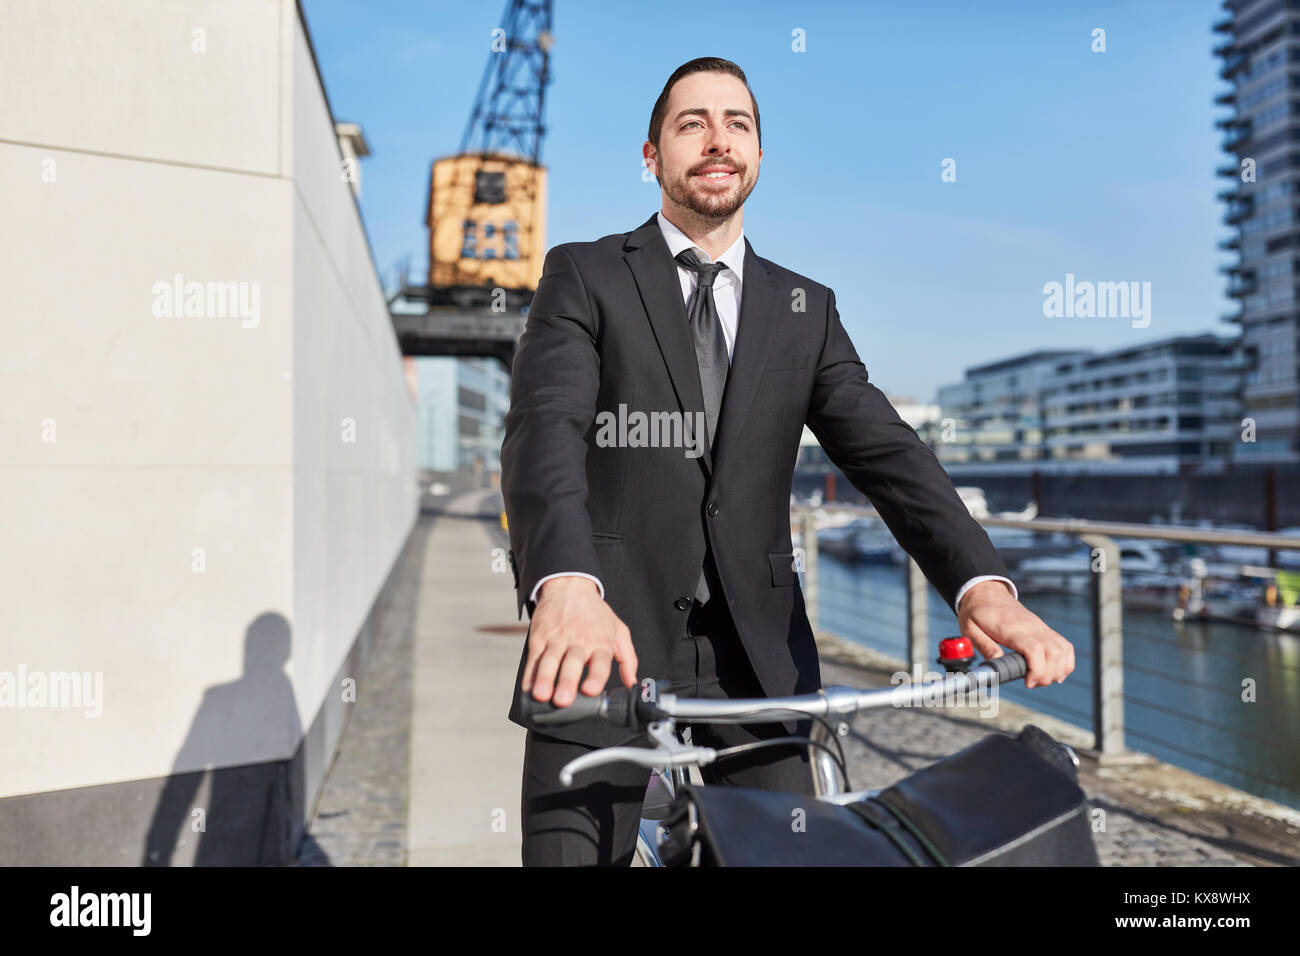 Young entrepreneur with the bike actively on the road in the city - Stock Image